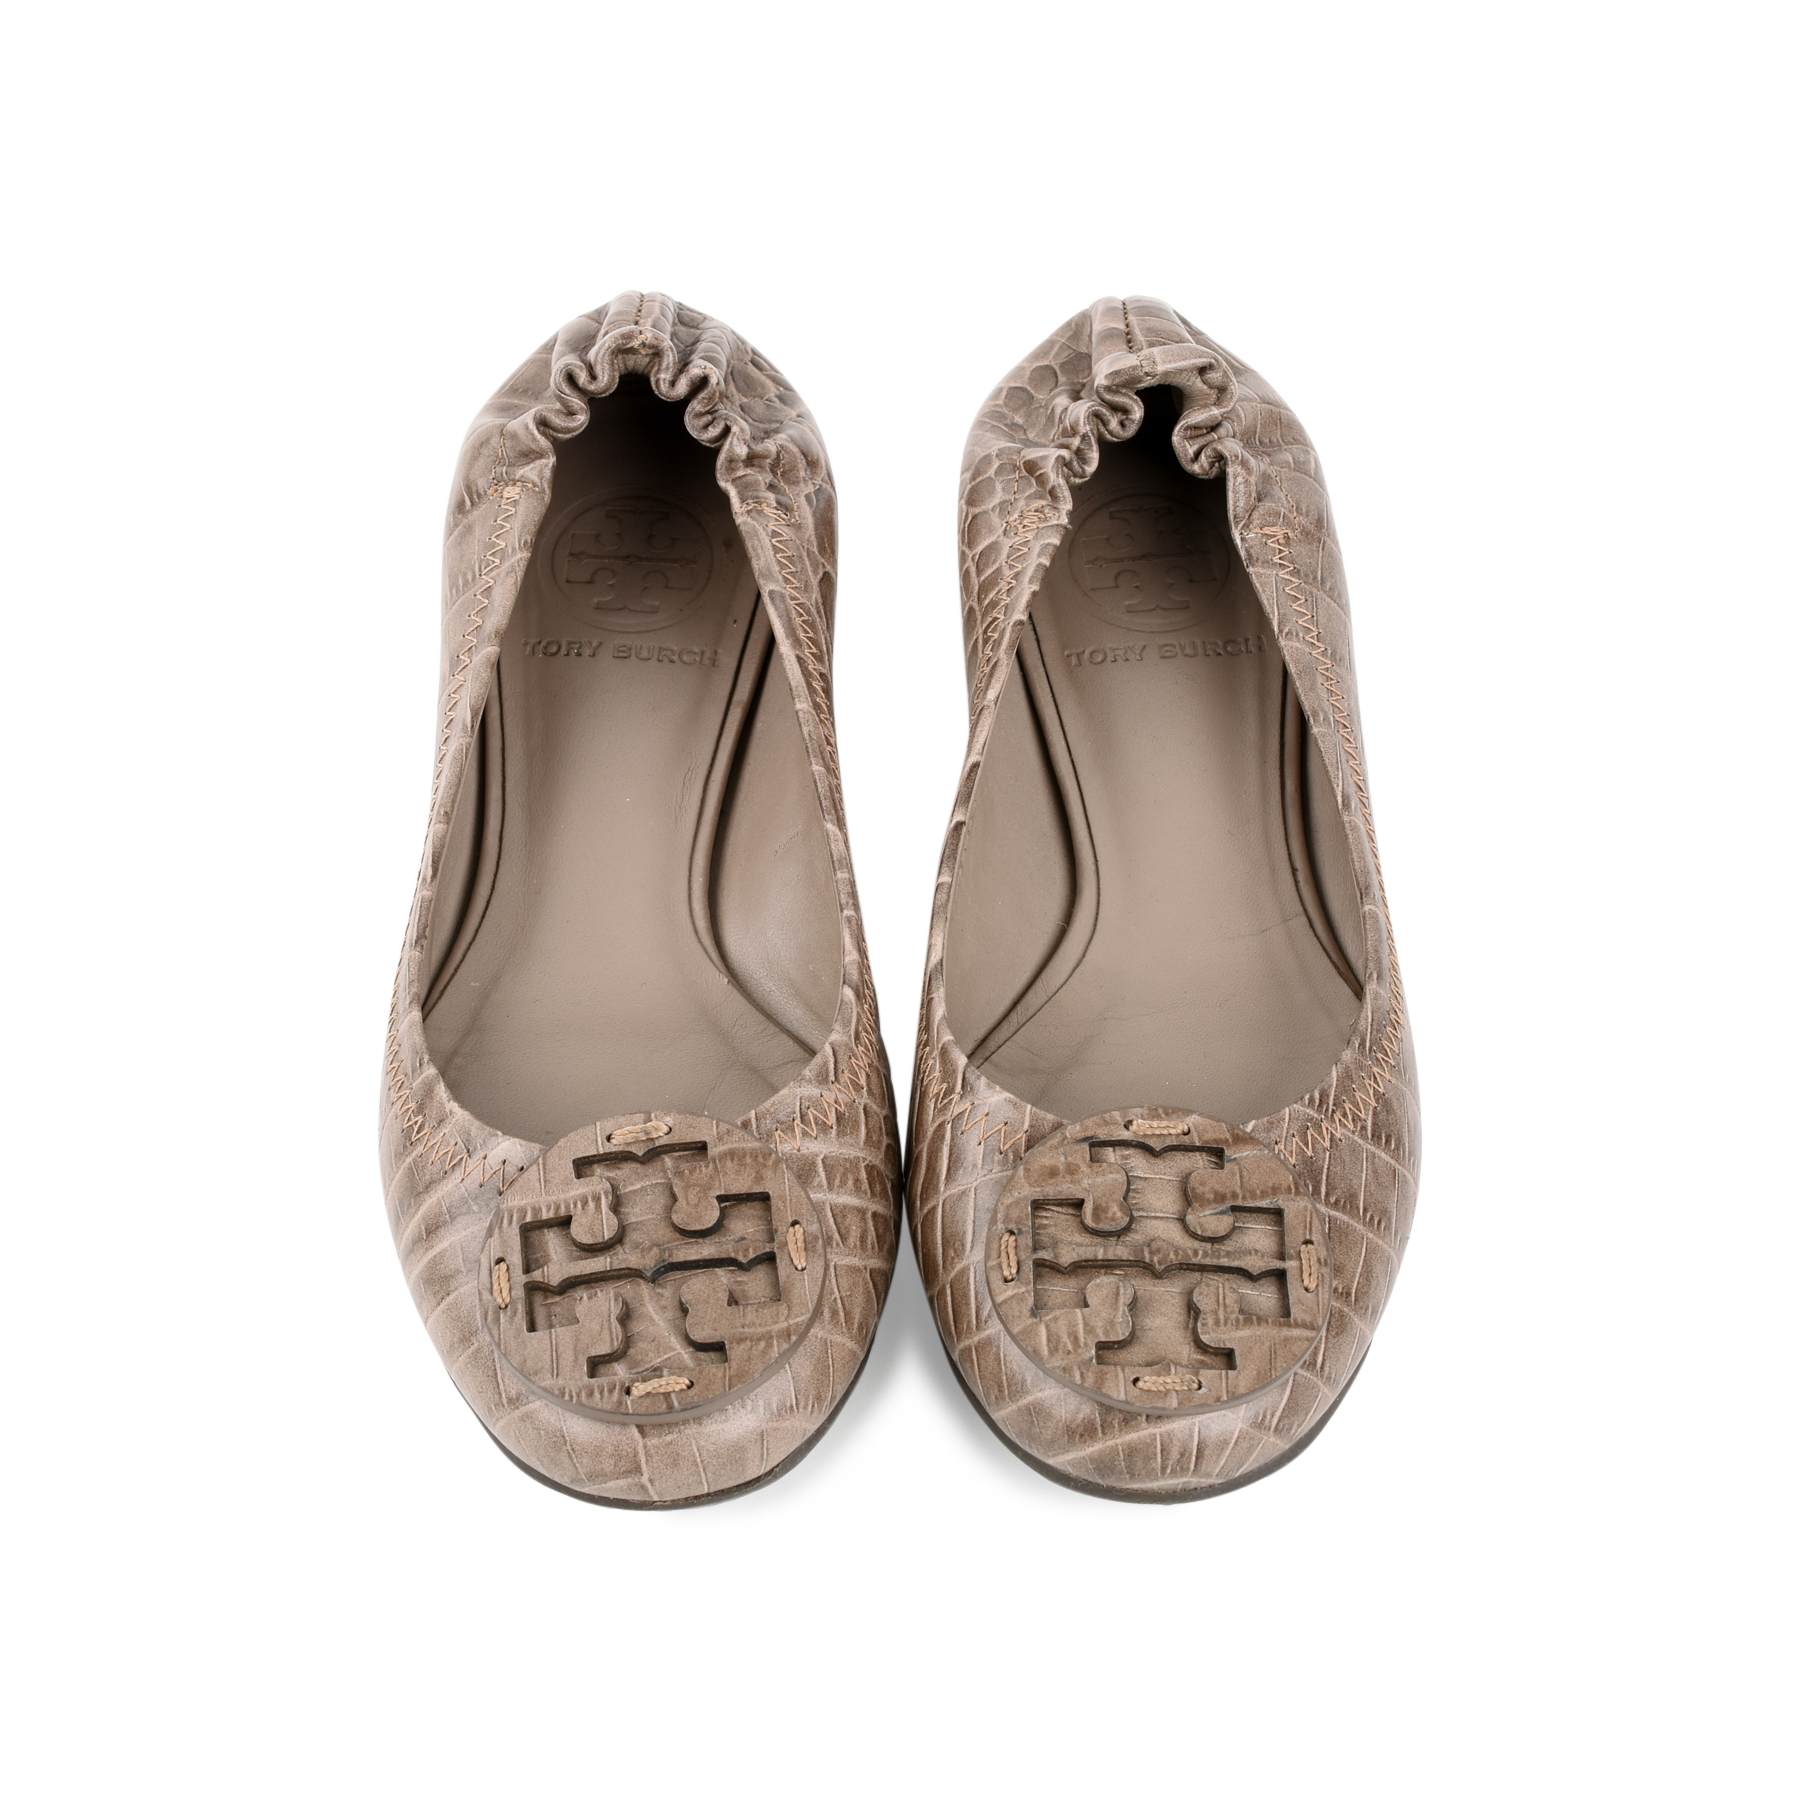 7544ed5efc Authentic Second Hand Tory Burch Crocodile Embossed reva Flats  (PSS-225-00024) - THE FIFTH COLLECTION